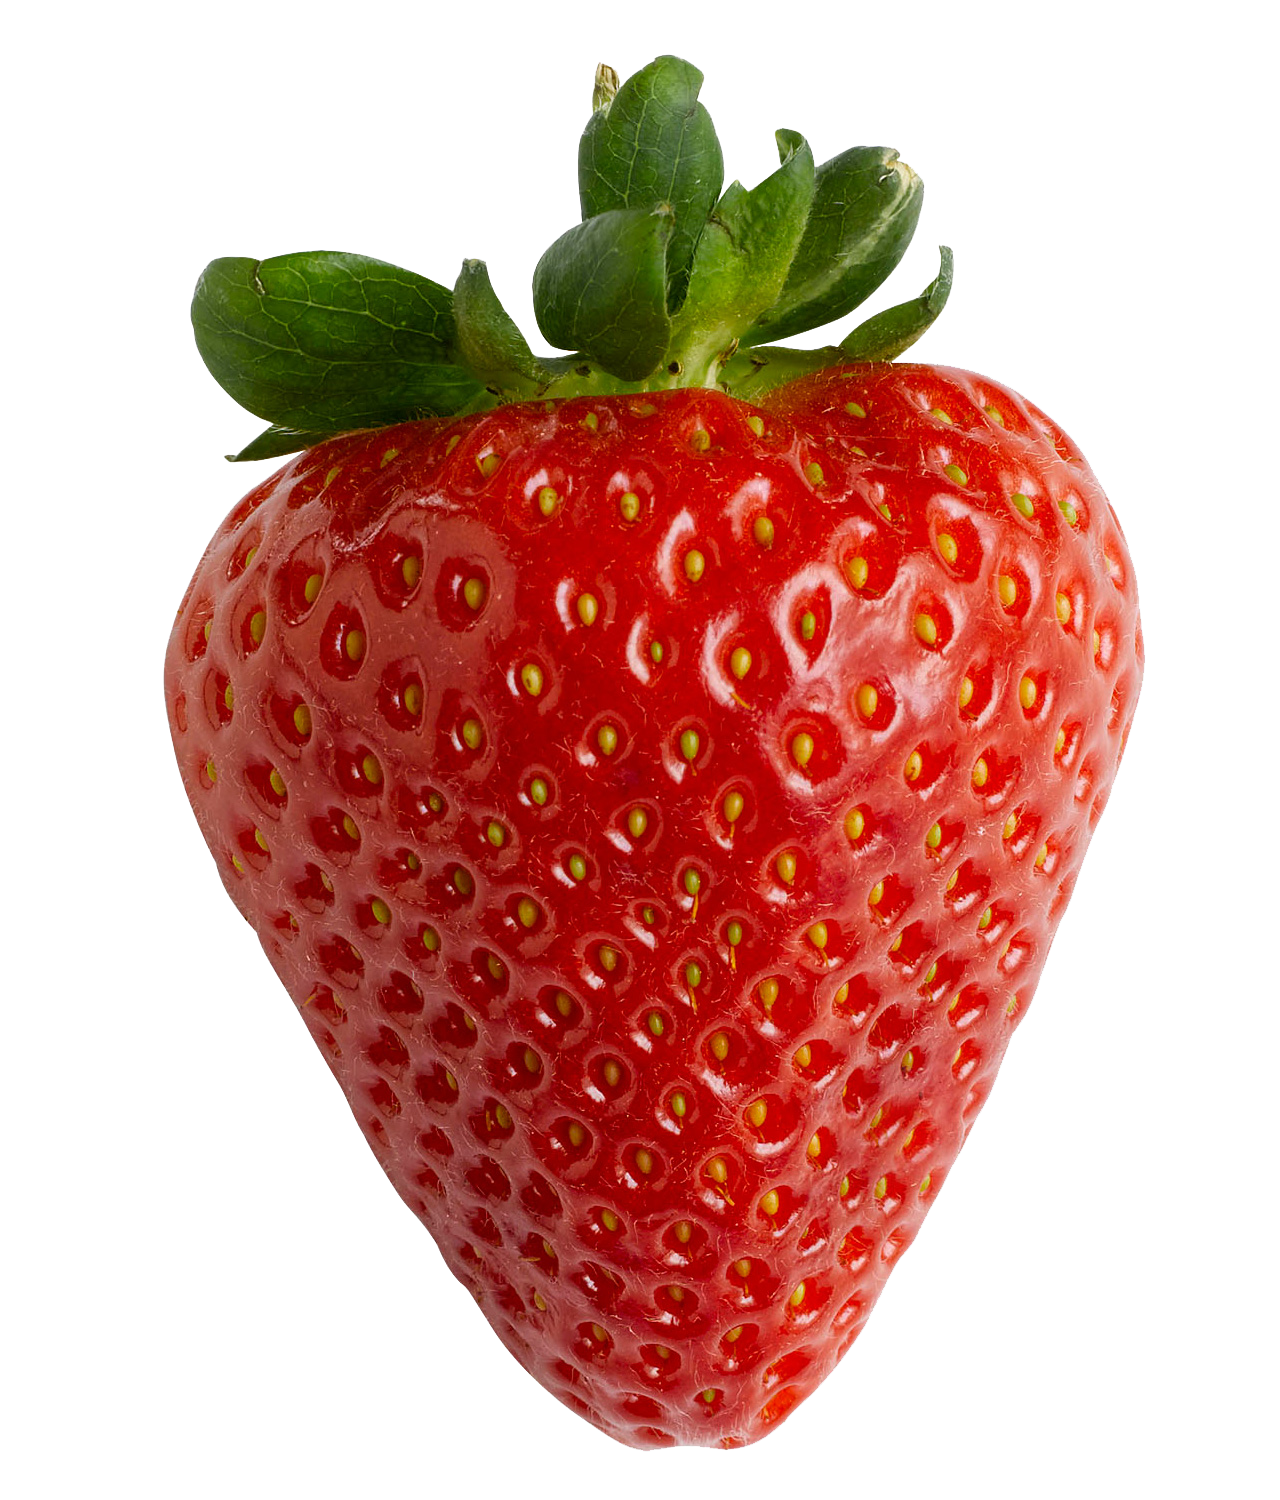 Download Strawberry Picture HQ PNG Image | FreePNGImg